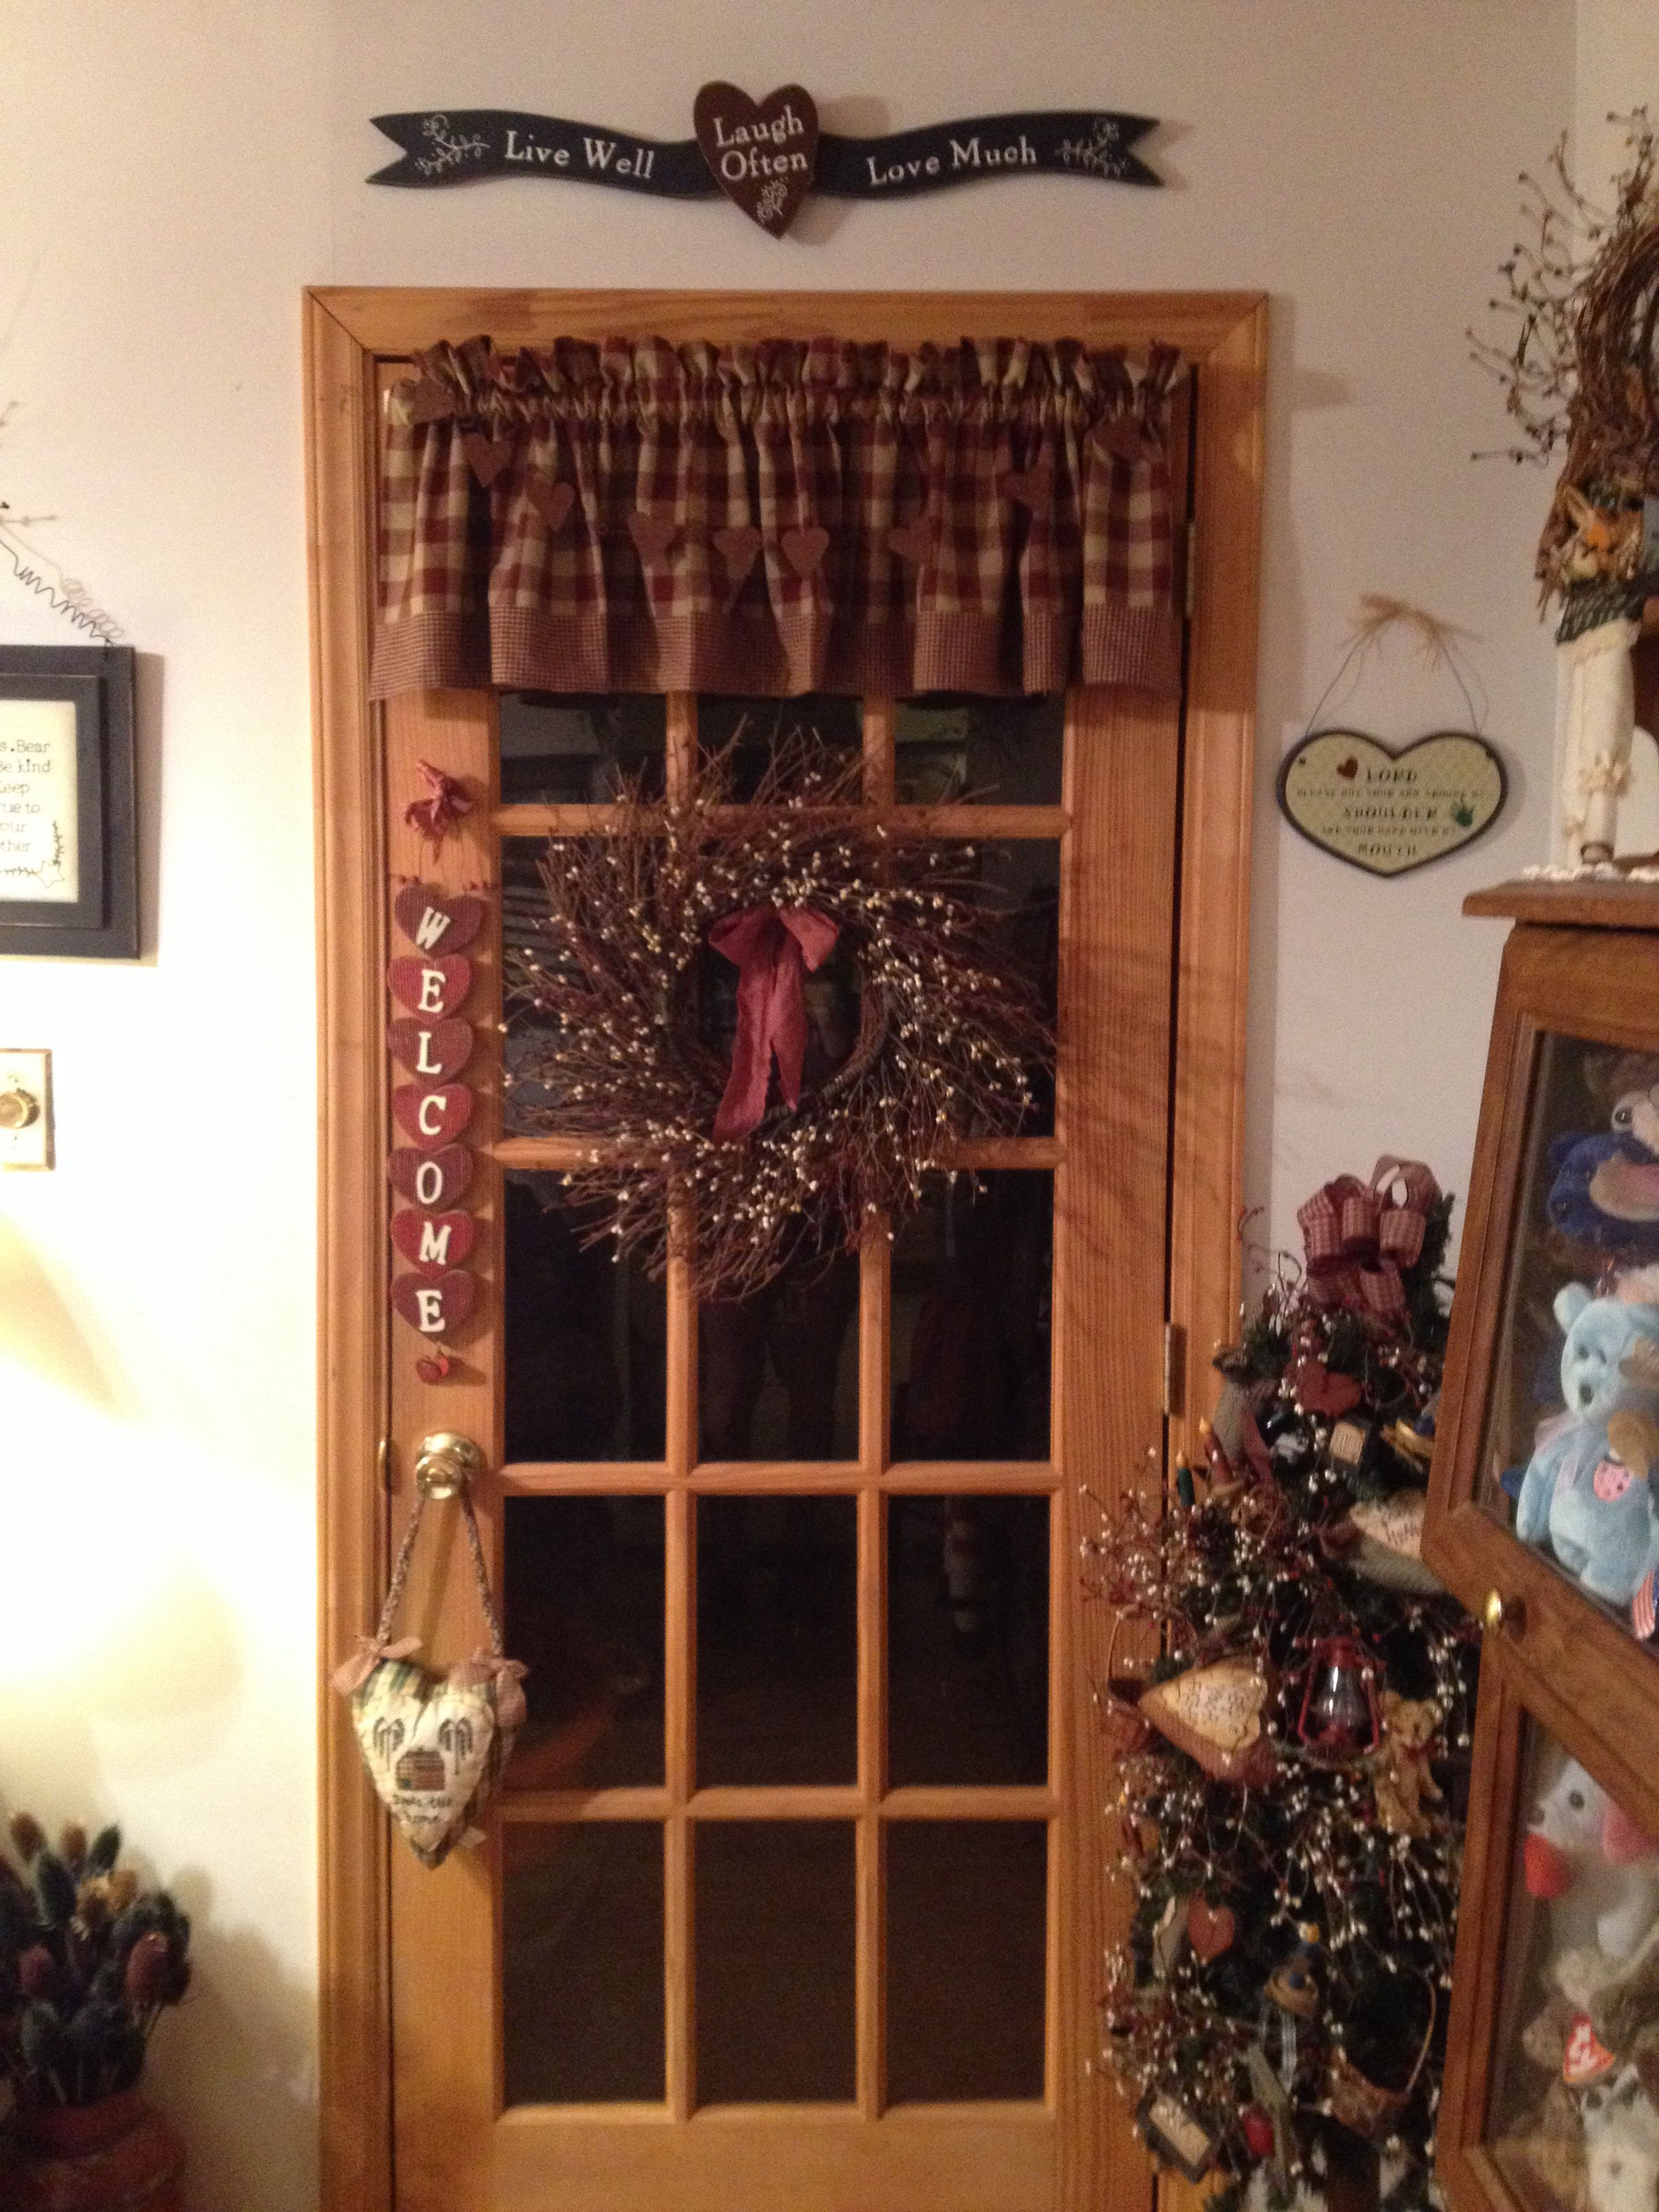 Primitive country rustic door decor   Decorating ideas and themes I ...